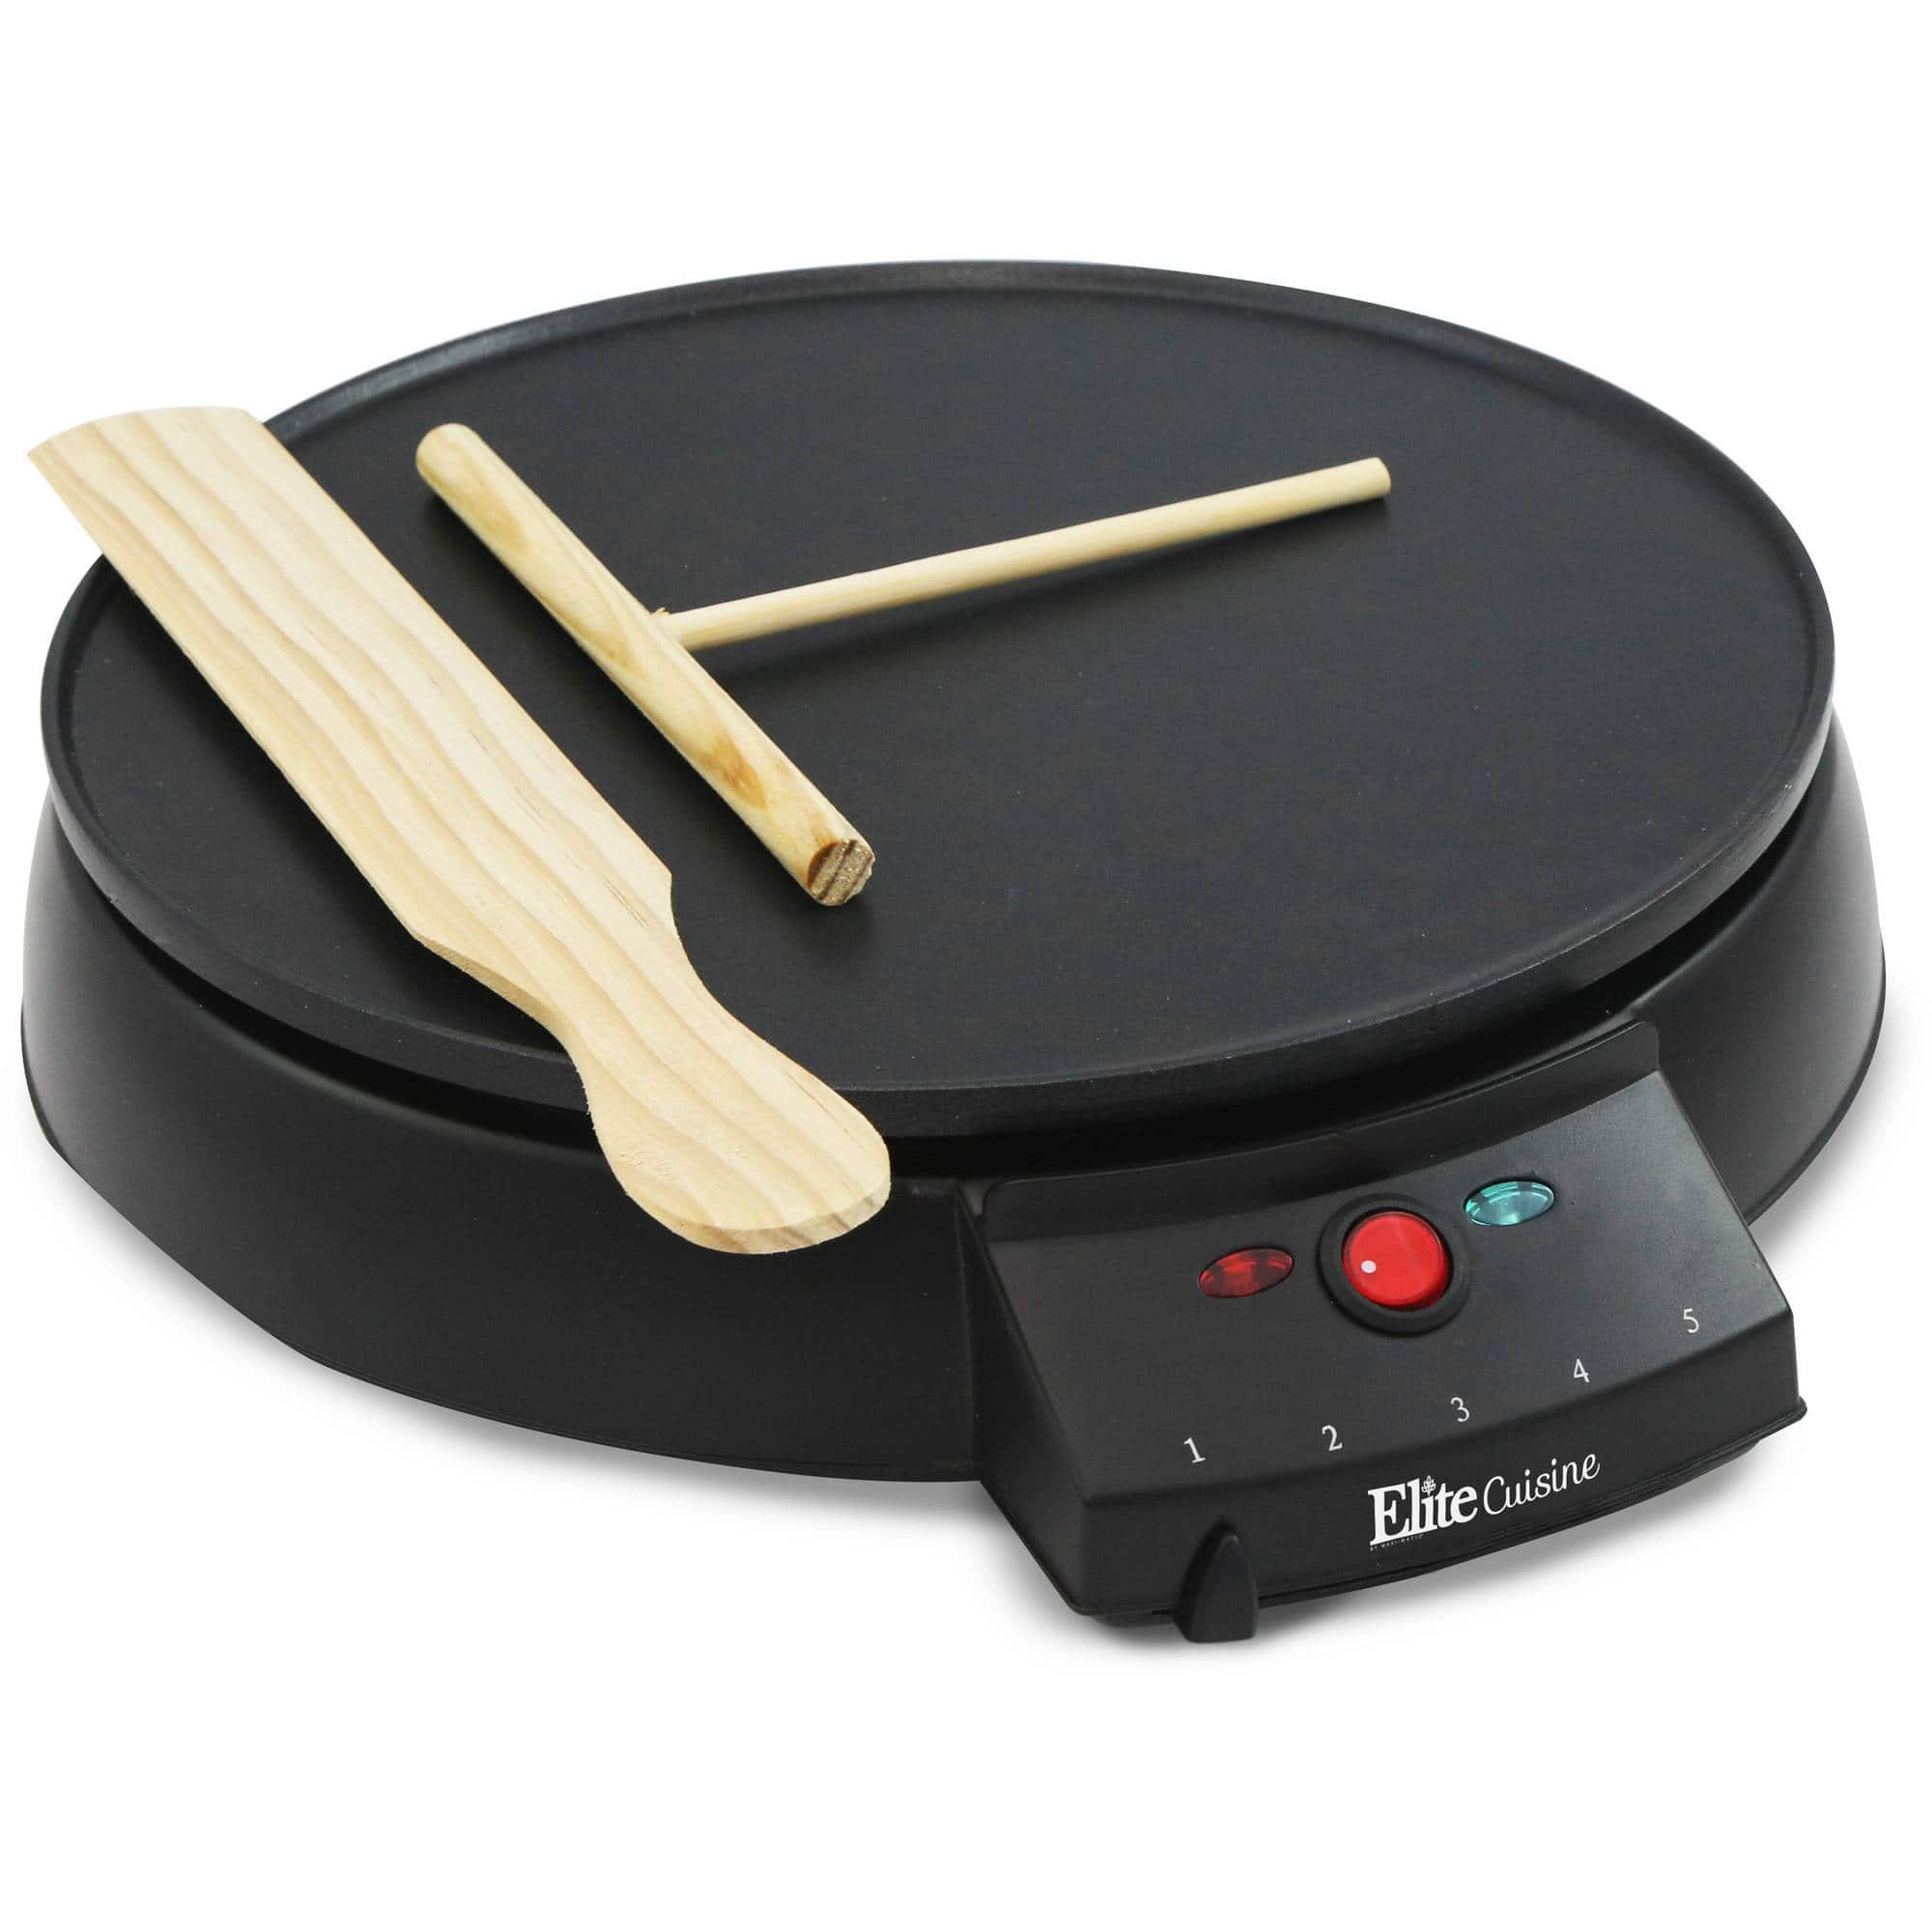 Elite Cuisine ECP-126 Crepe Maker and Griddle $17.39